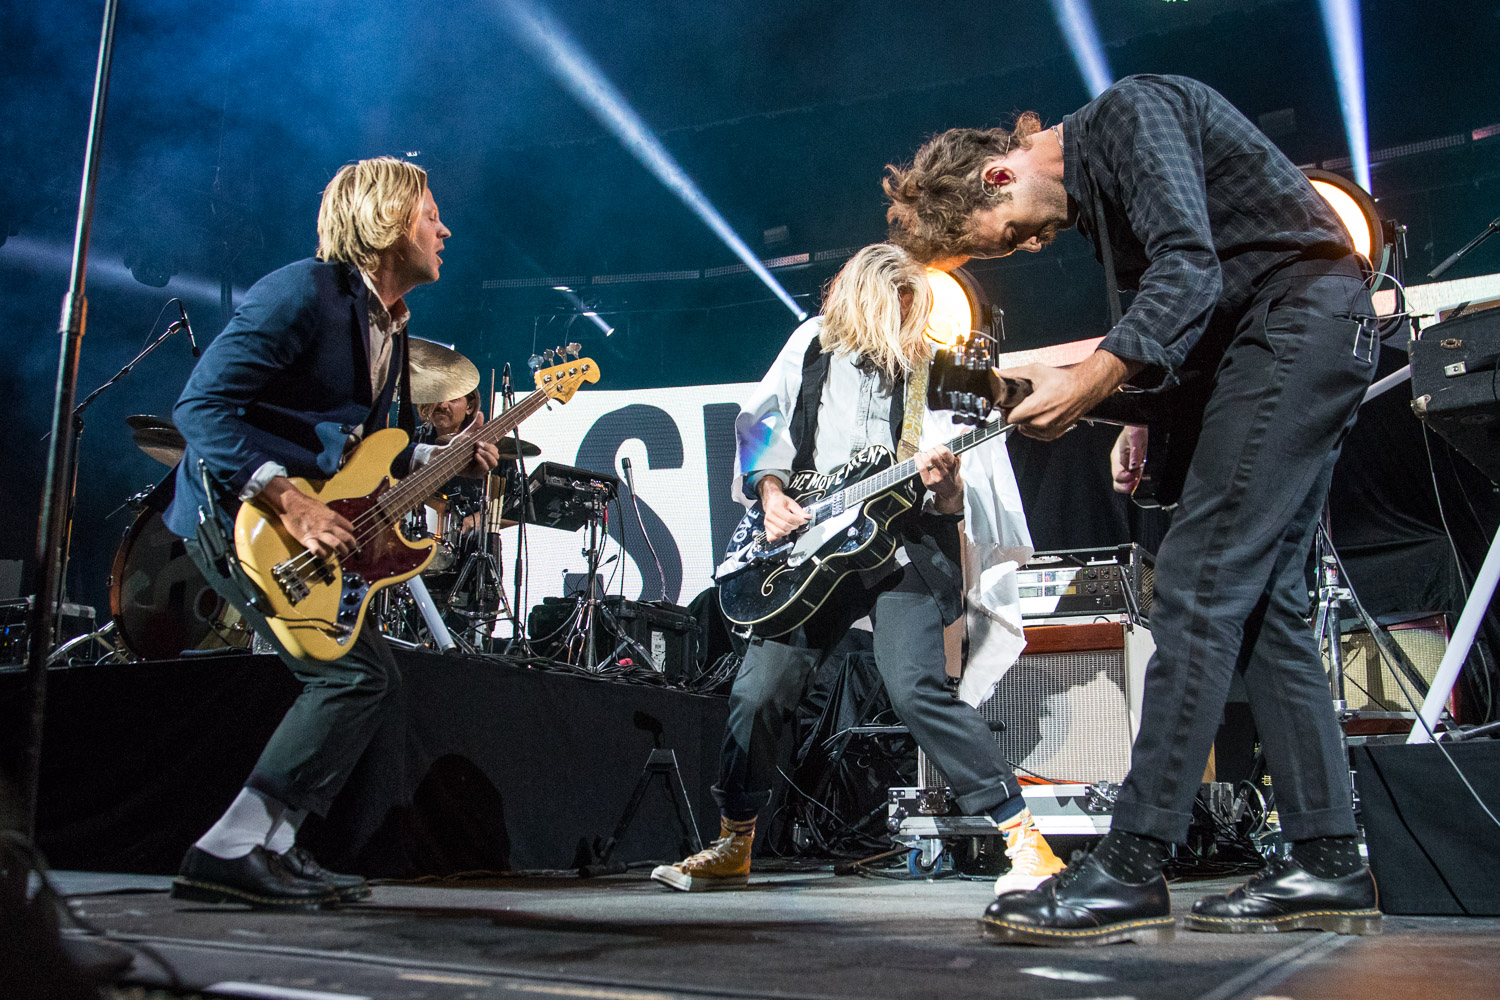 Tim Foreman, Jon Foreman, and Boaz Roberts of Switchfoot